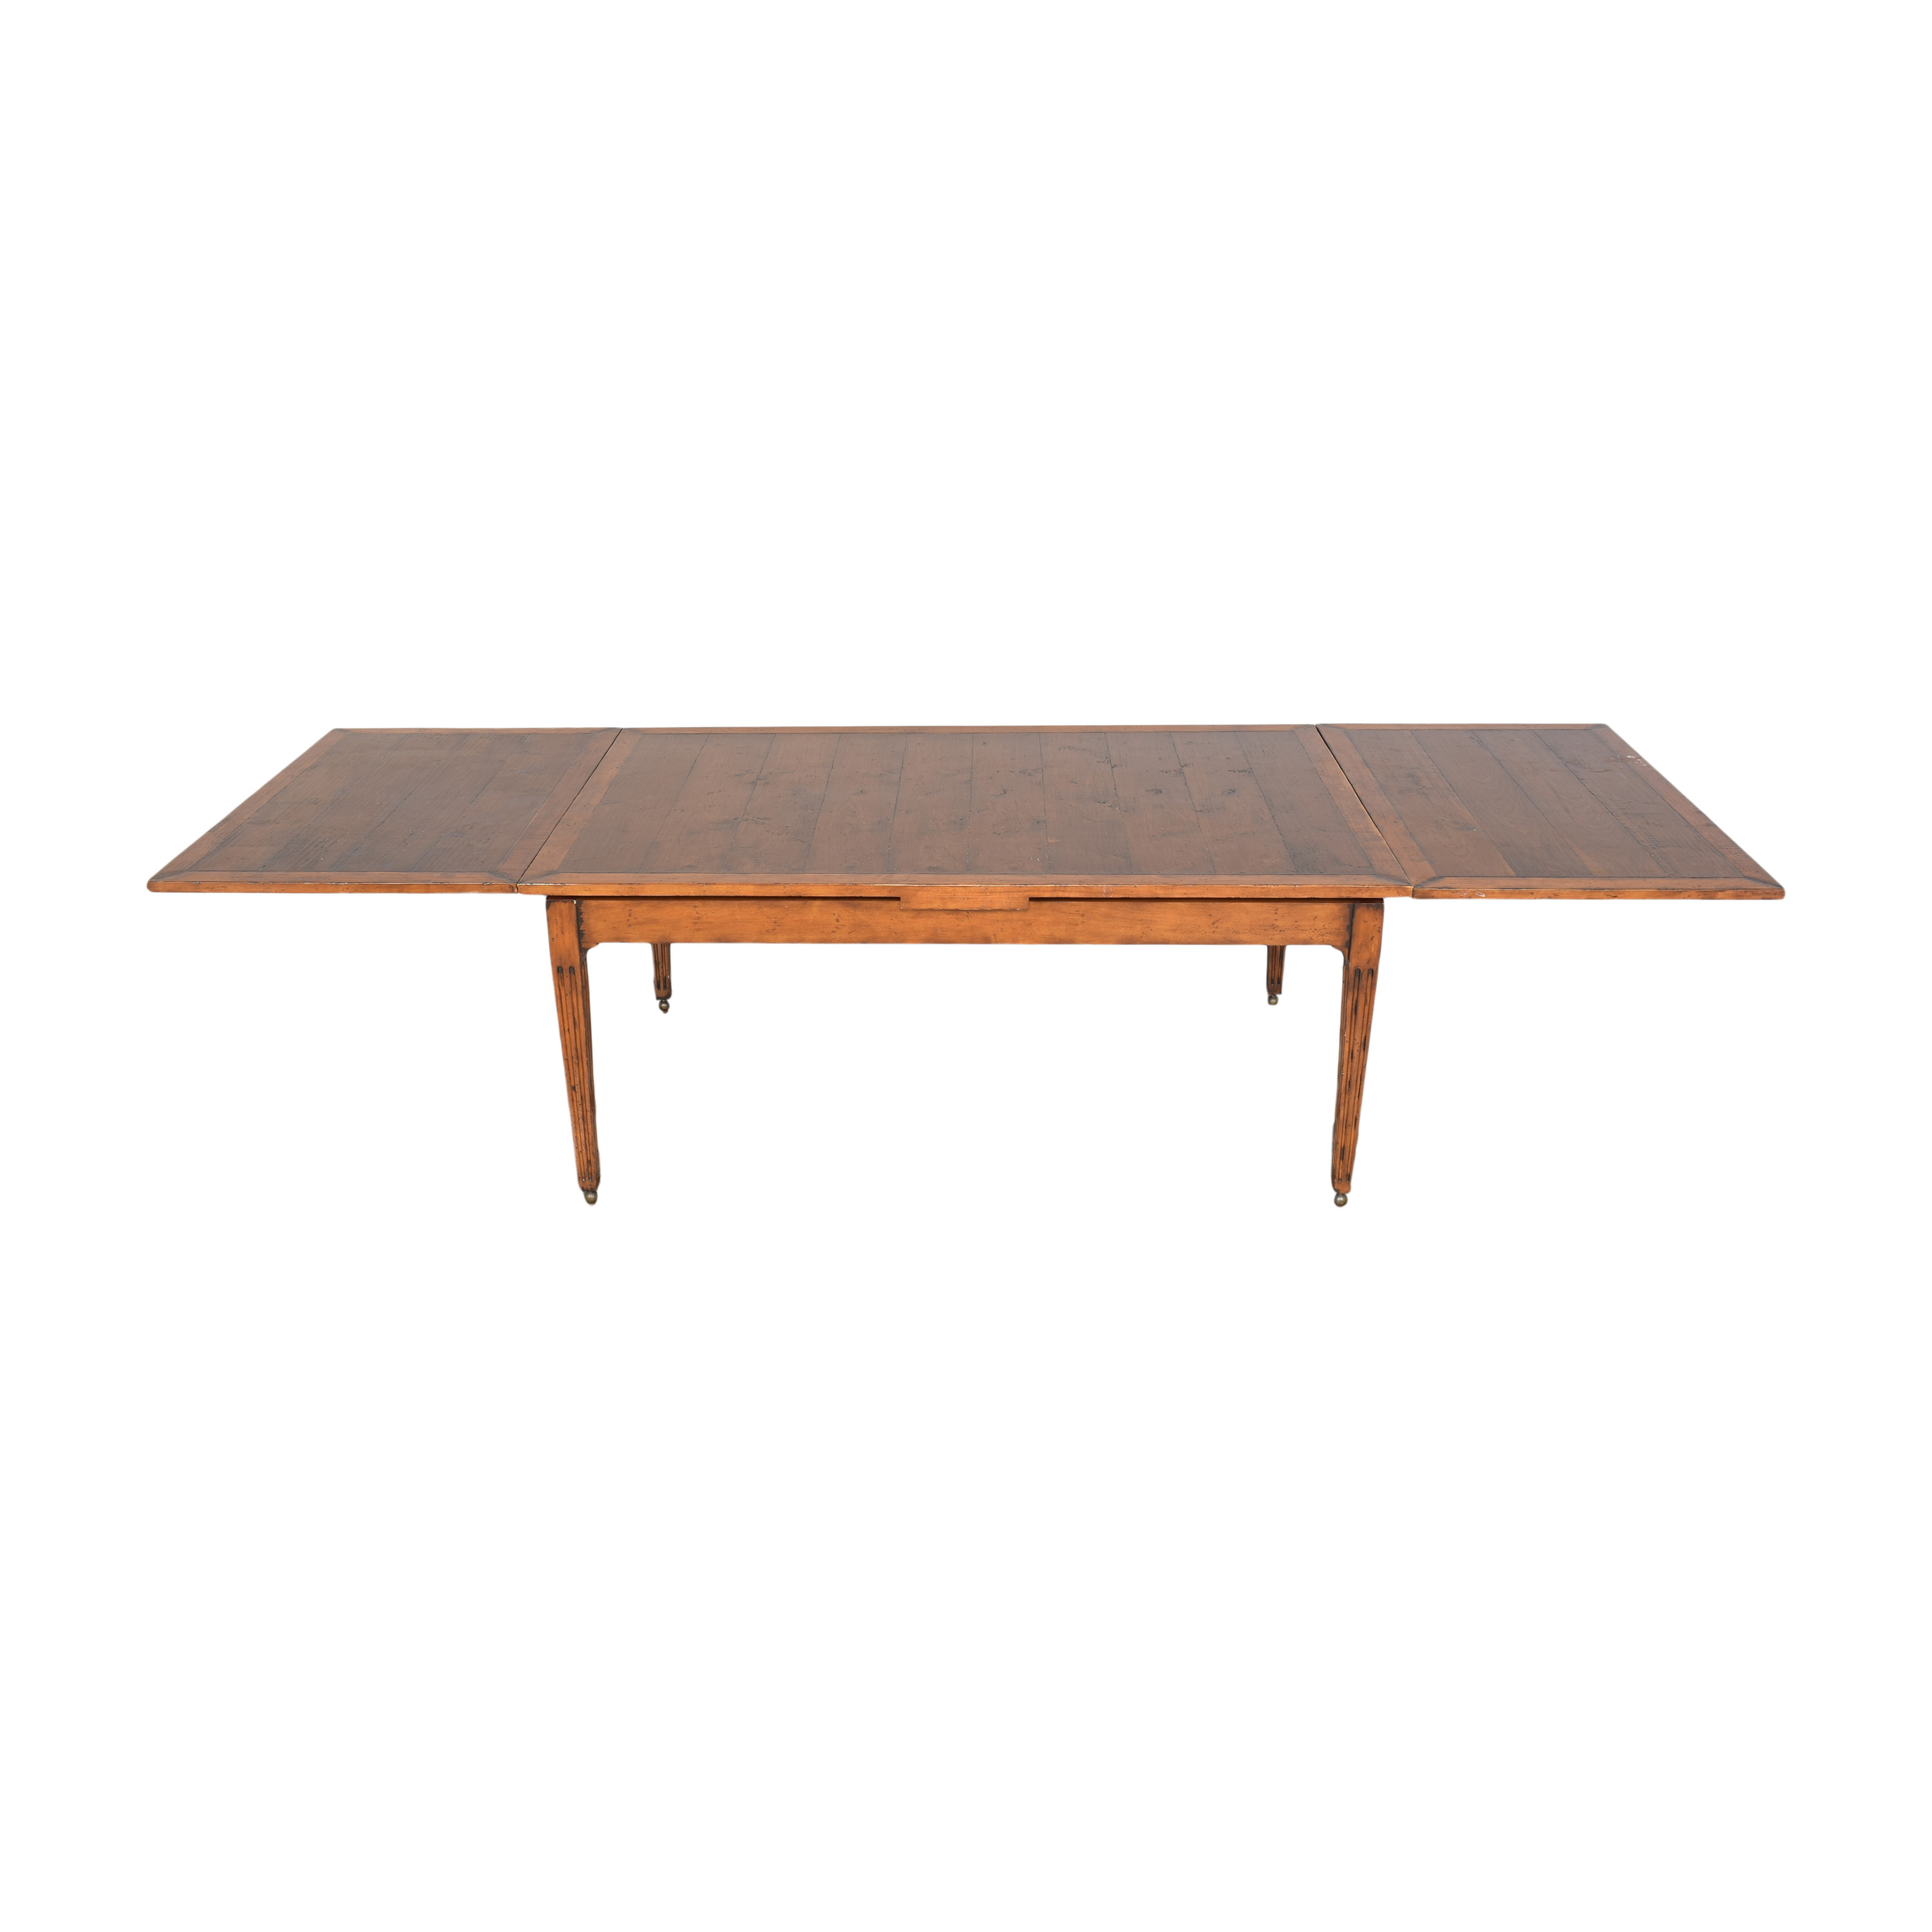 Henredon Furniture Henredon Acquisitions Extendable Dining Table dimensions